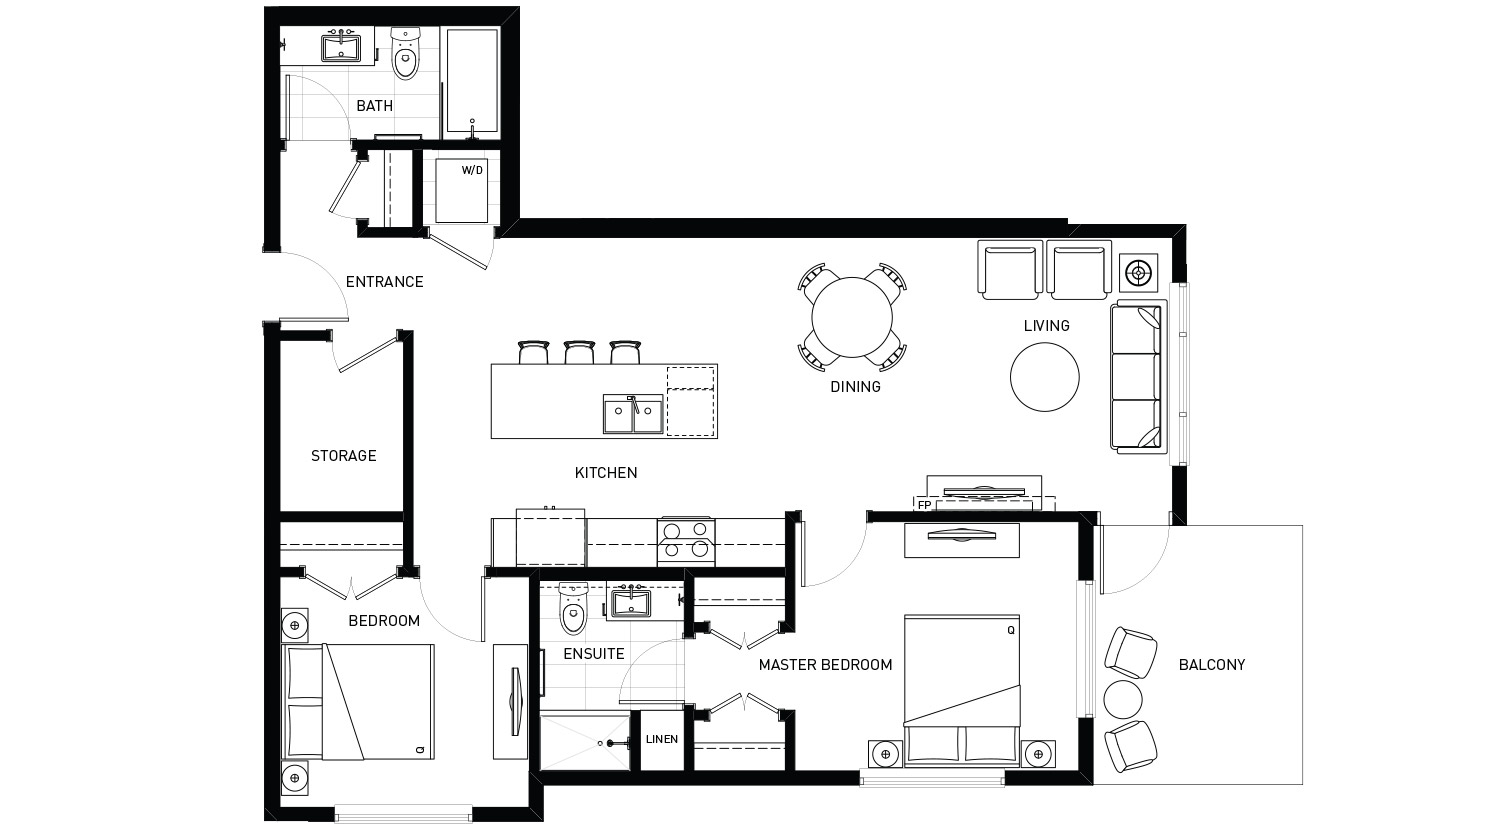 Plan A Floorplan